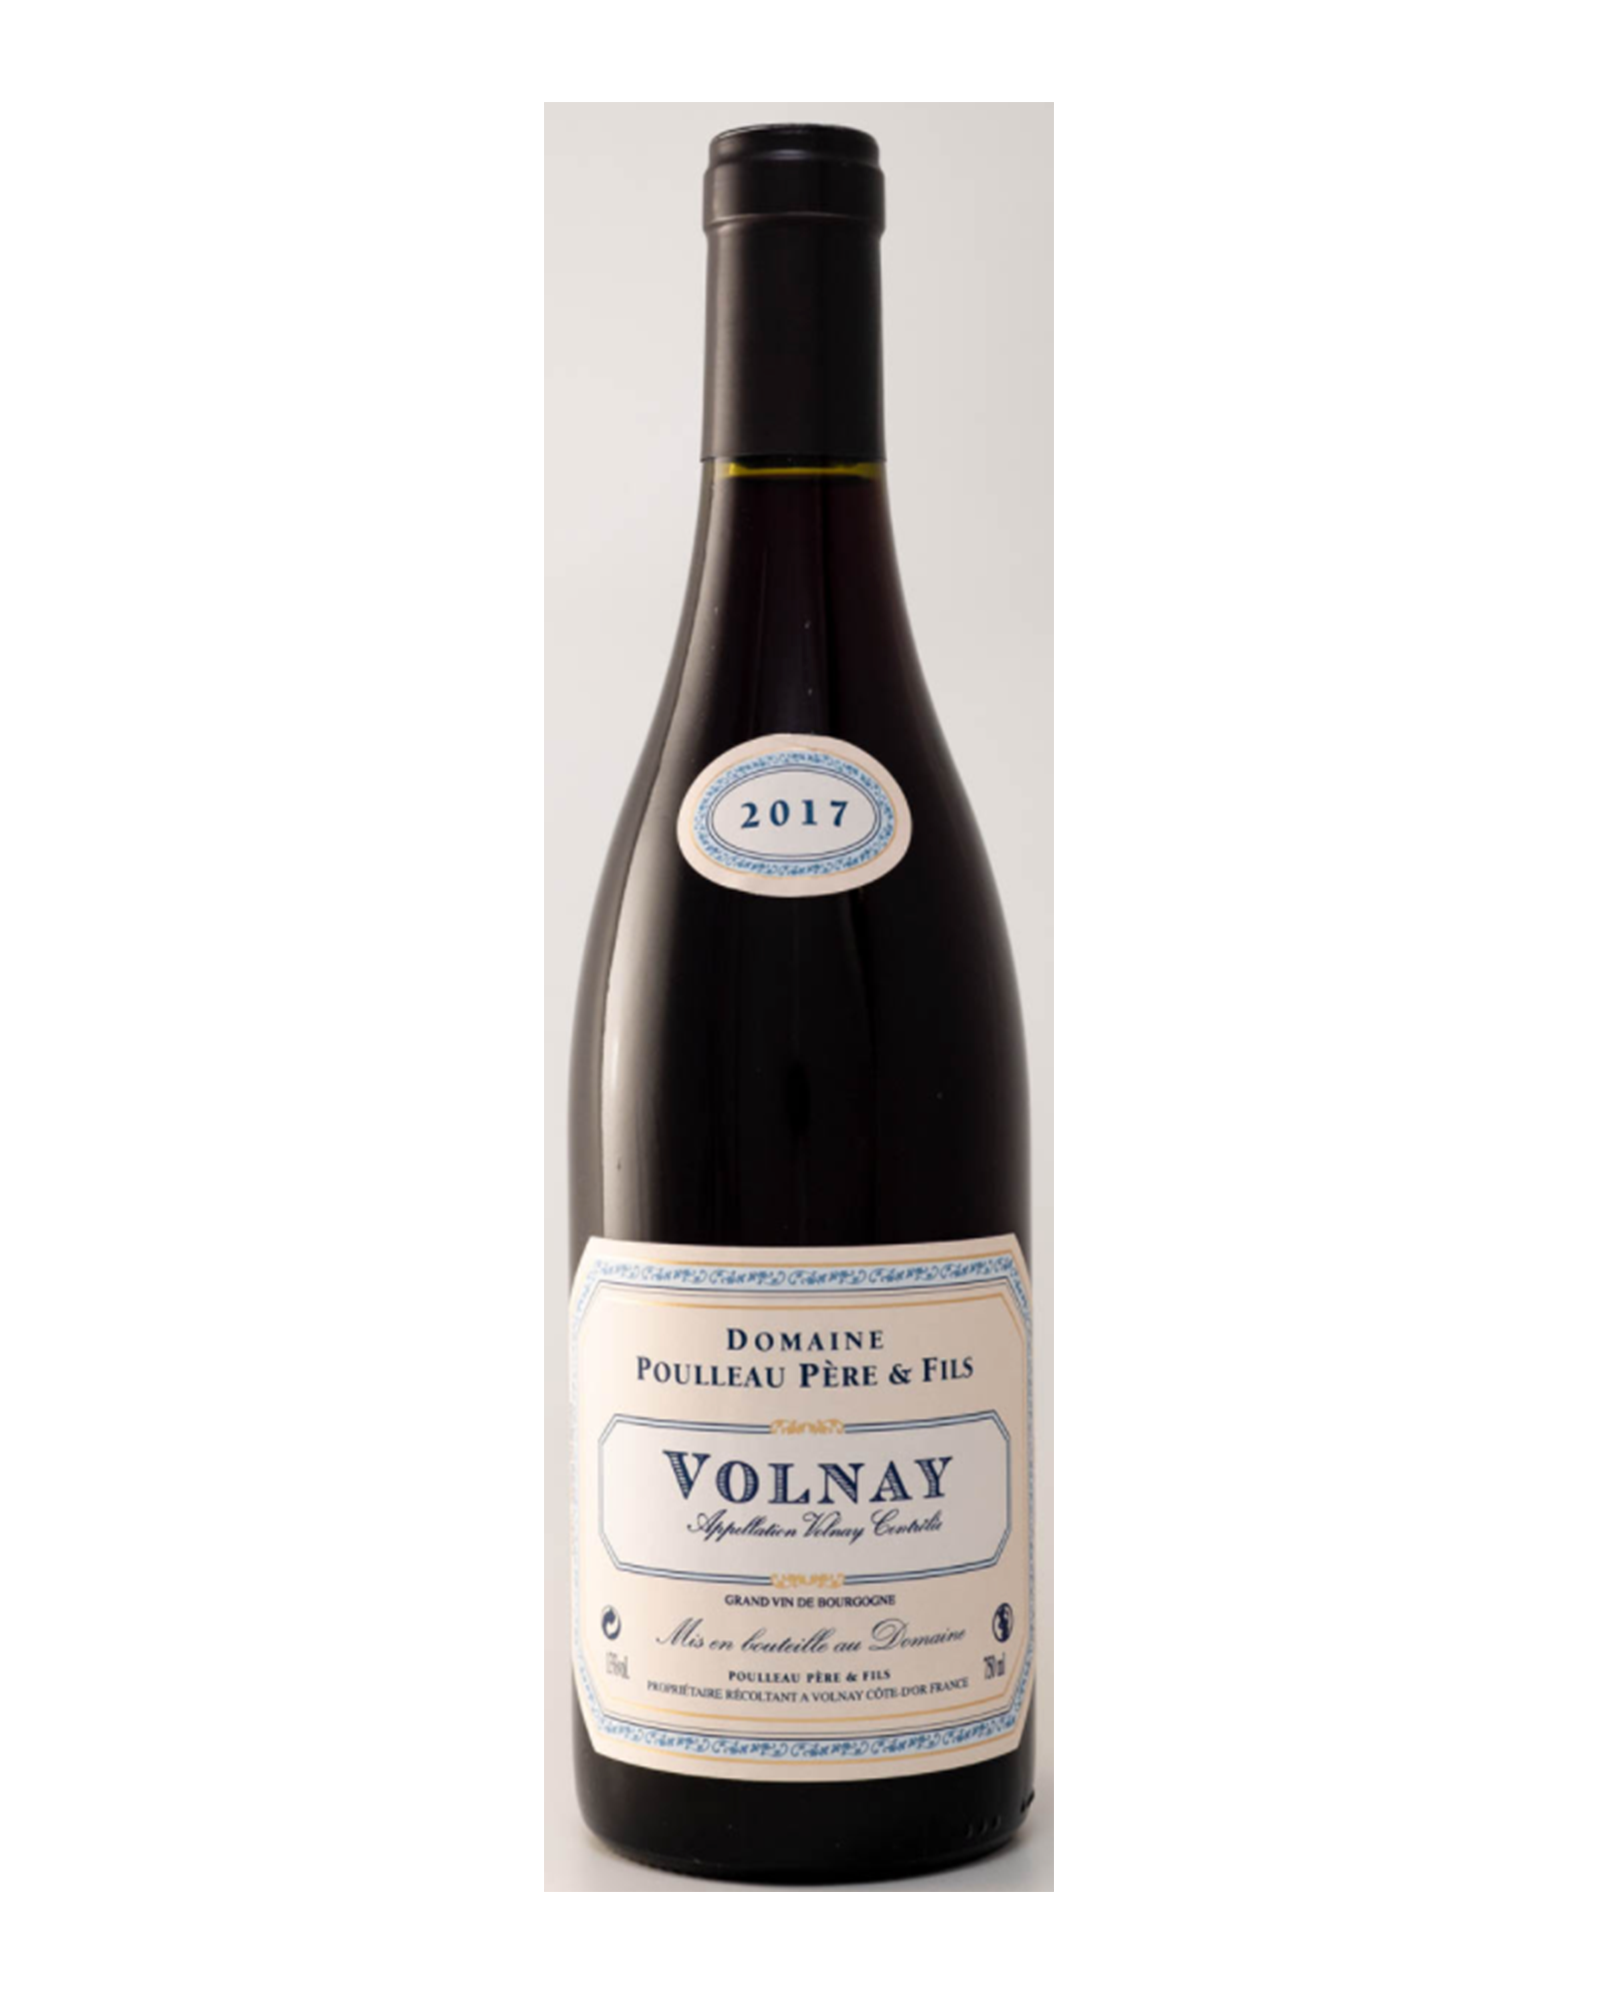 Volnay Domaine Poulleau 2017